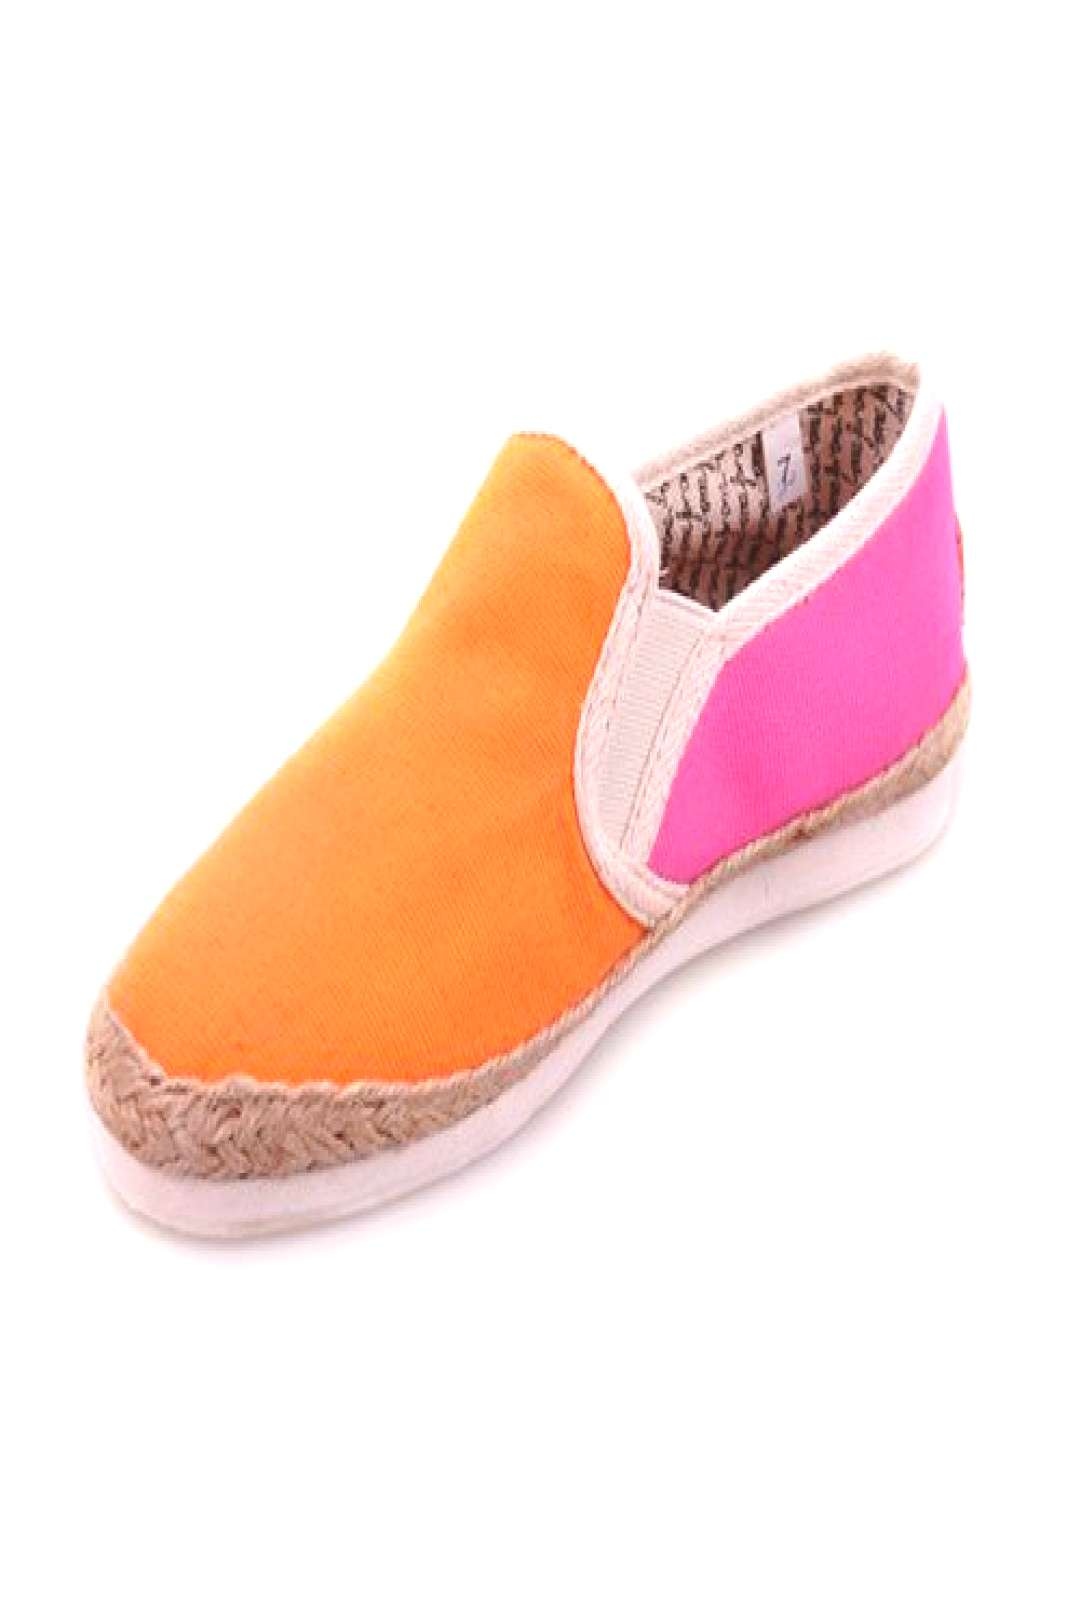 Toms Flax Weaving Mixed Color Schuhe Frauen in Orange und Pink Toms Outlet, Ihre ... - Toms Flax